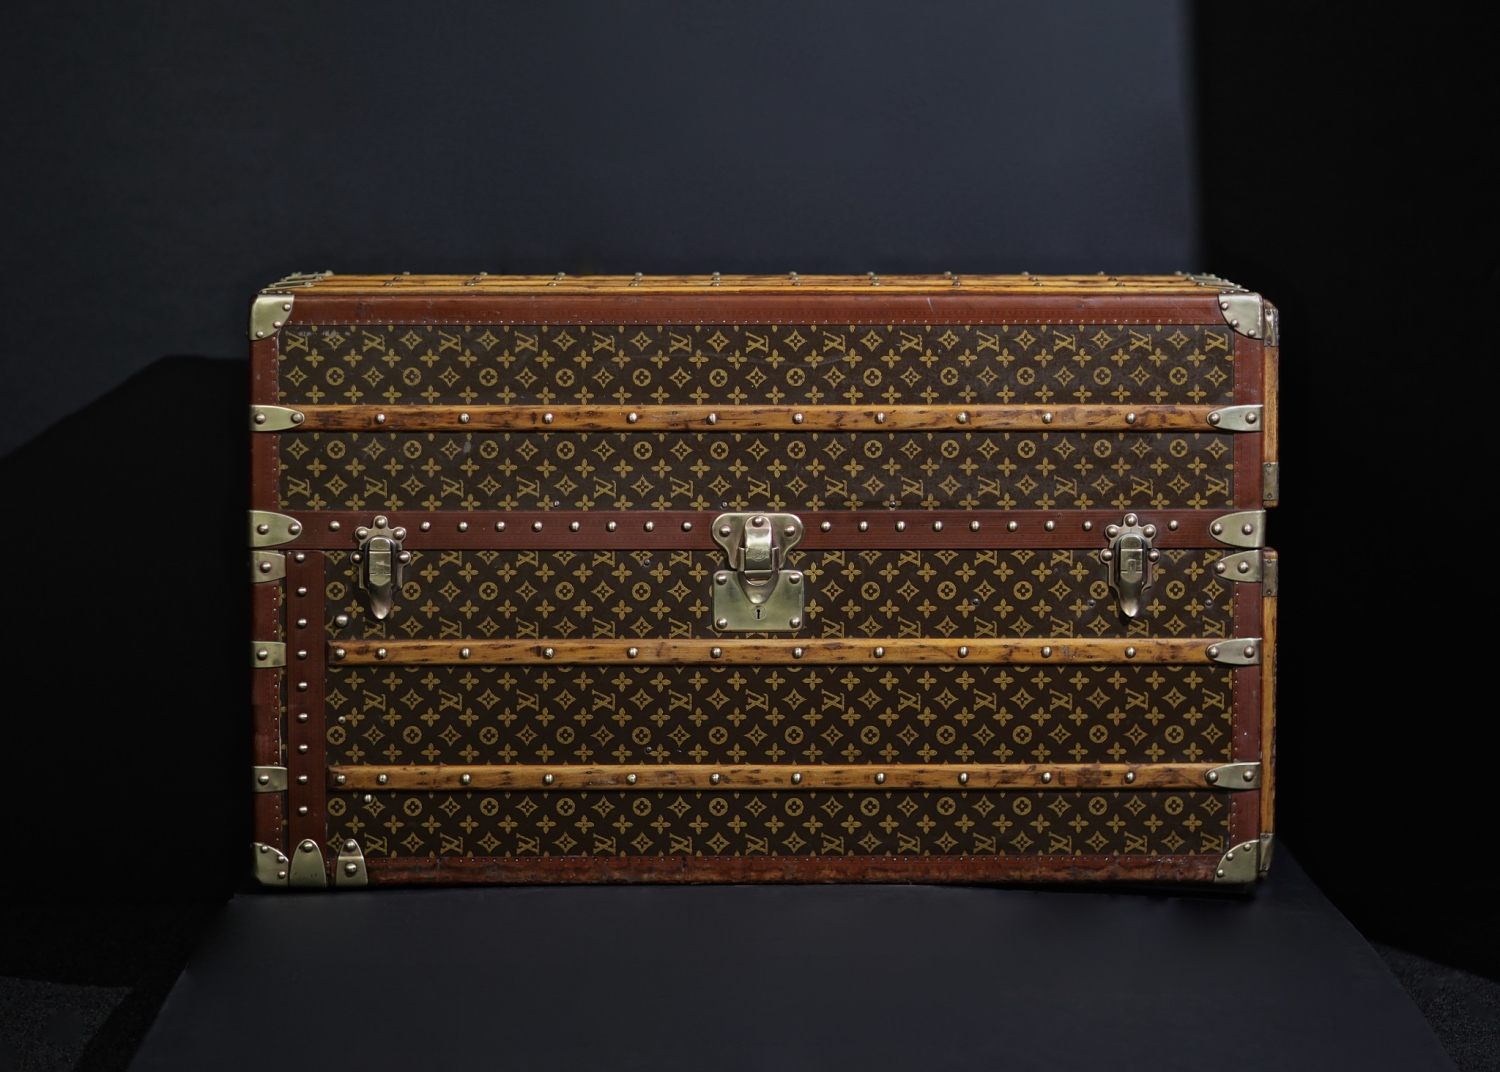 the-well-traveled-trunk-louis-vuitton-thumbnail-product-5678-1